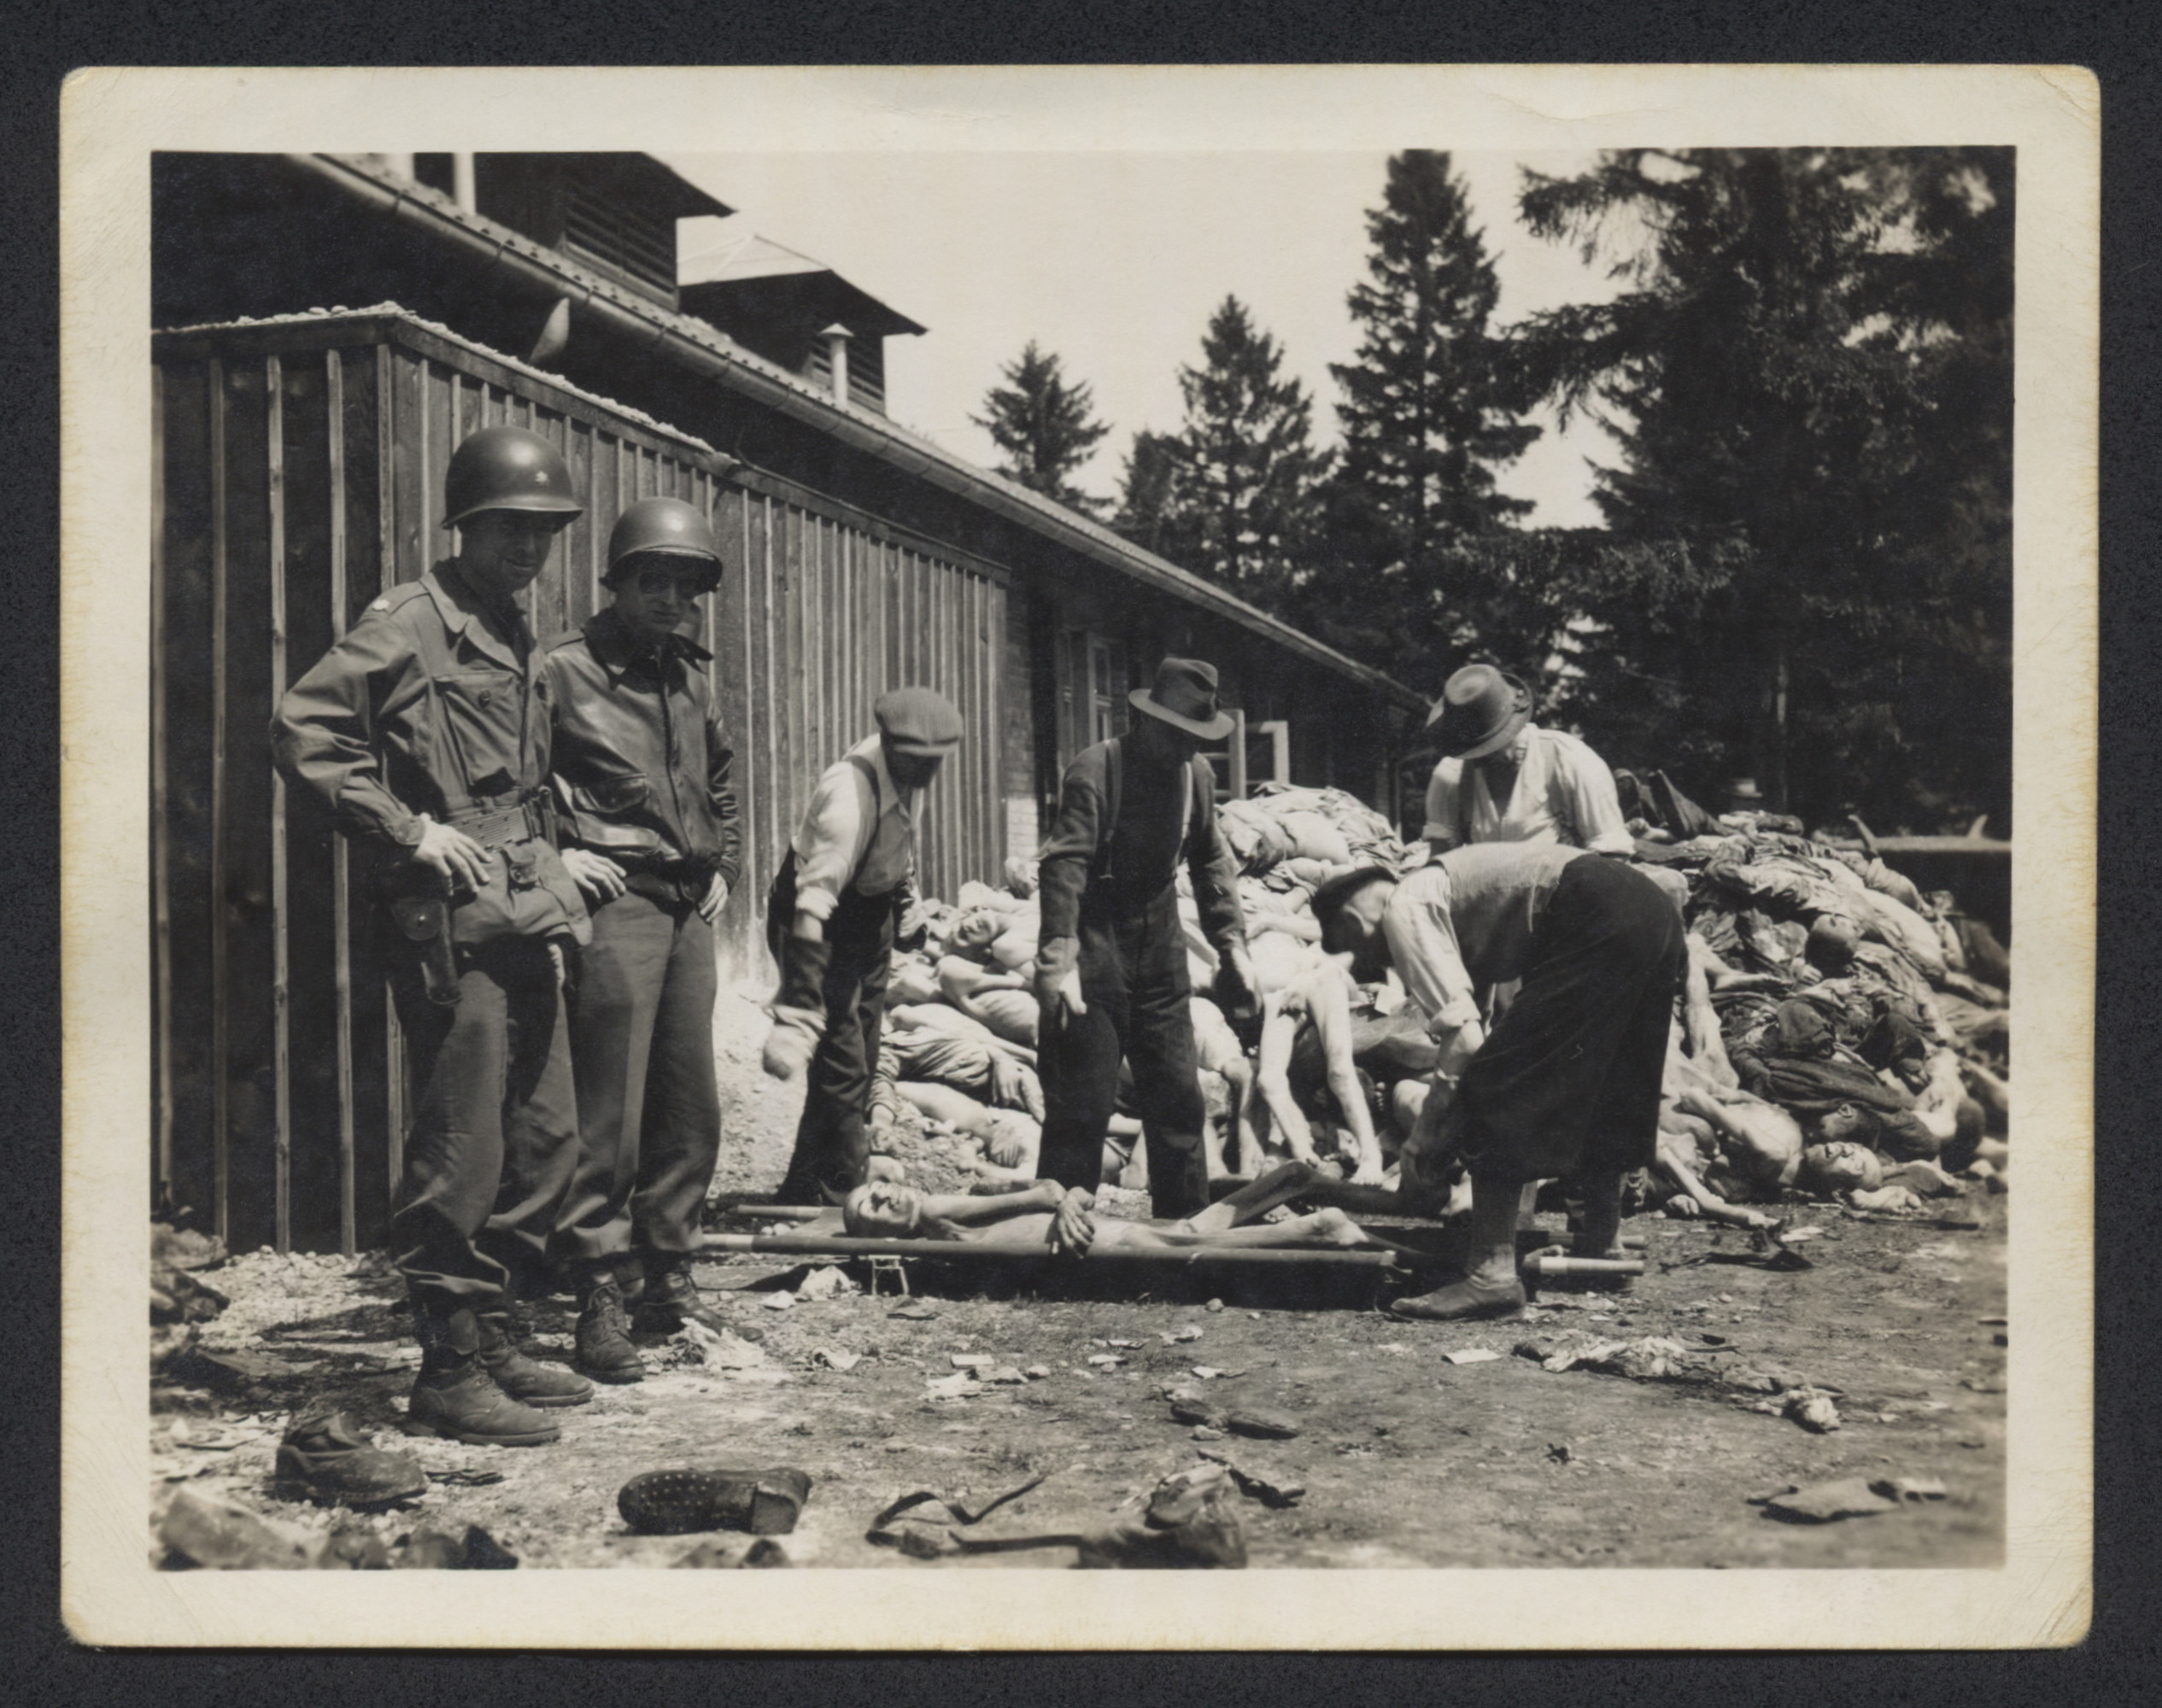 An American colonel and other soldier watch German civilians remove corpses piled behind the crematorium of the Dachau concentration camp.